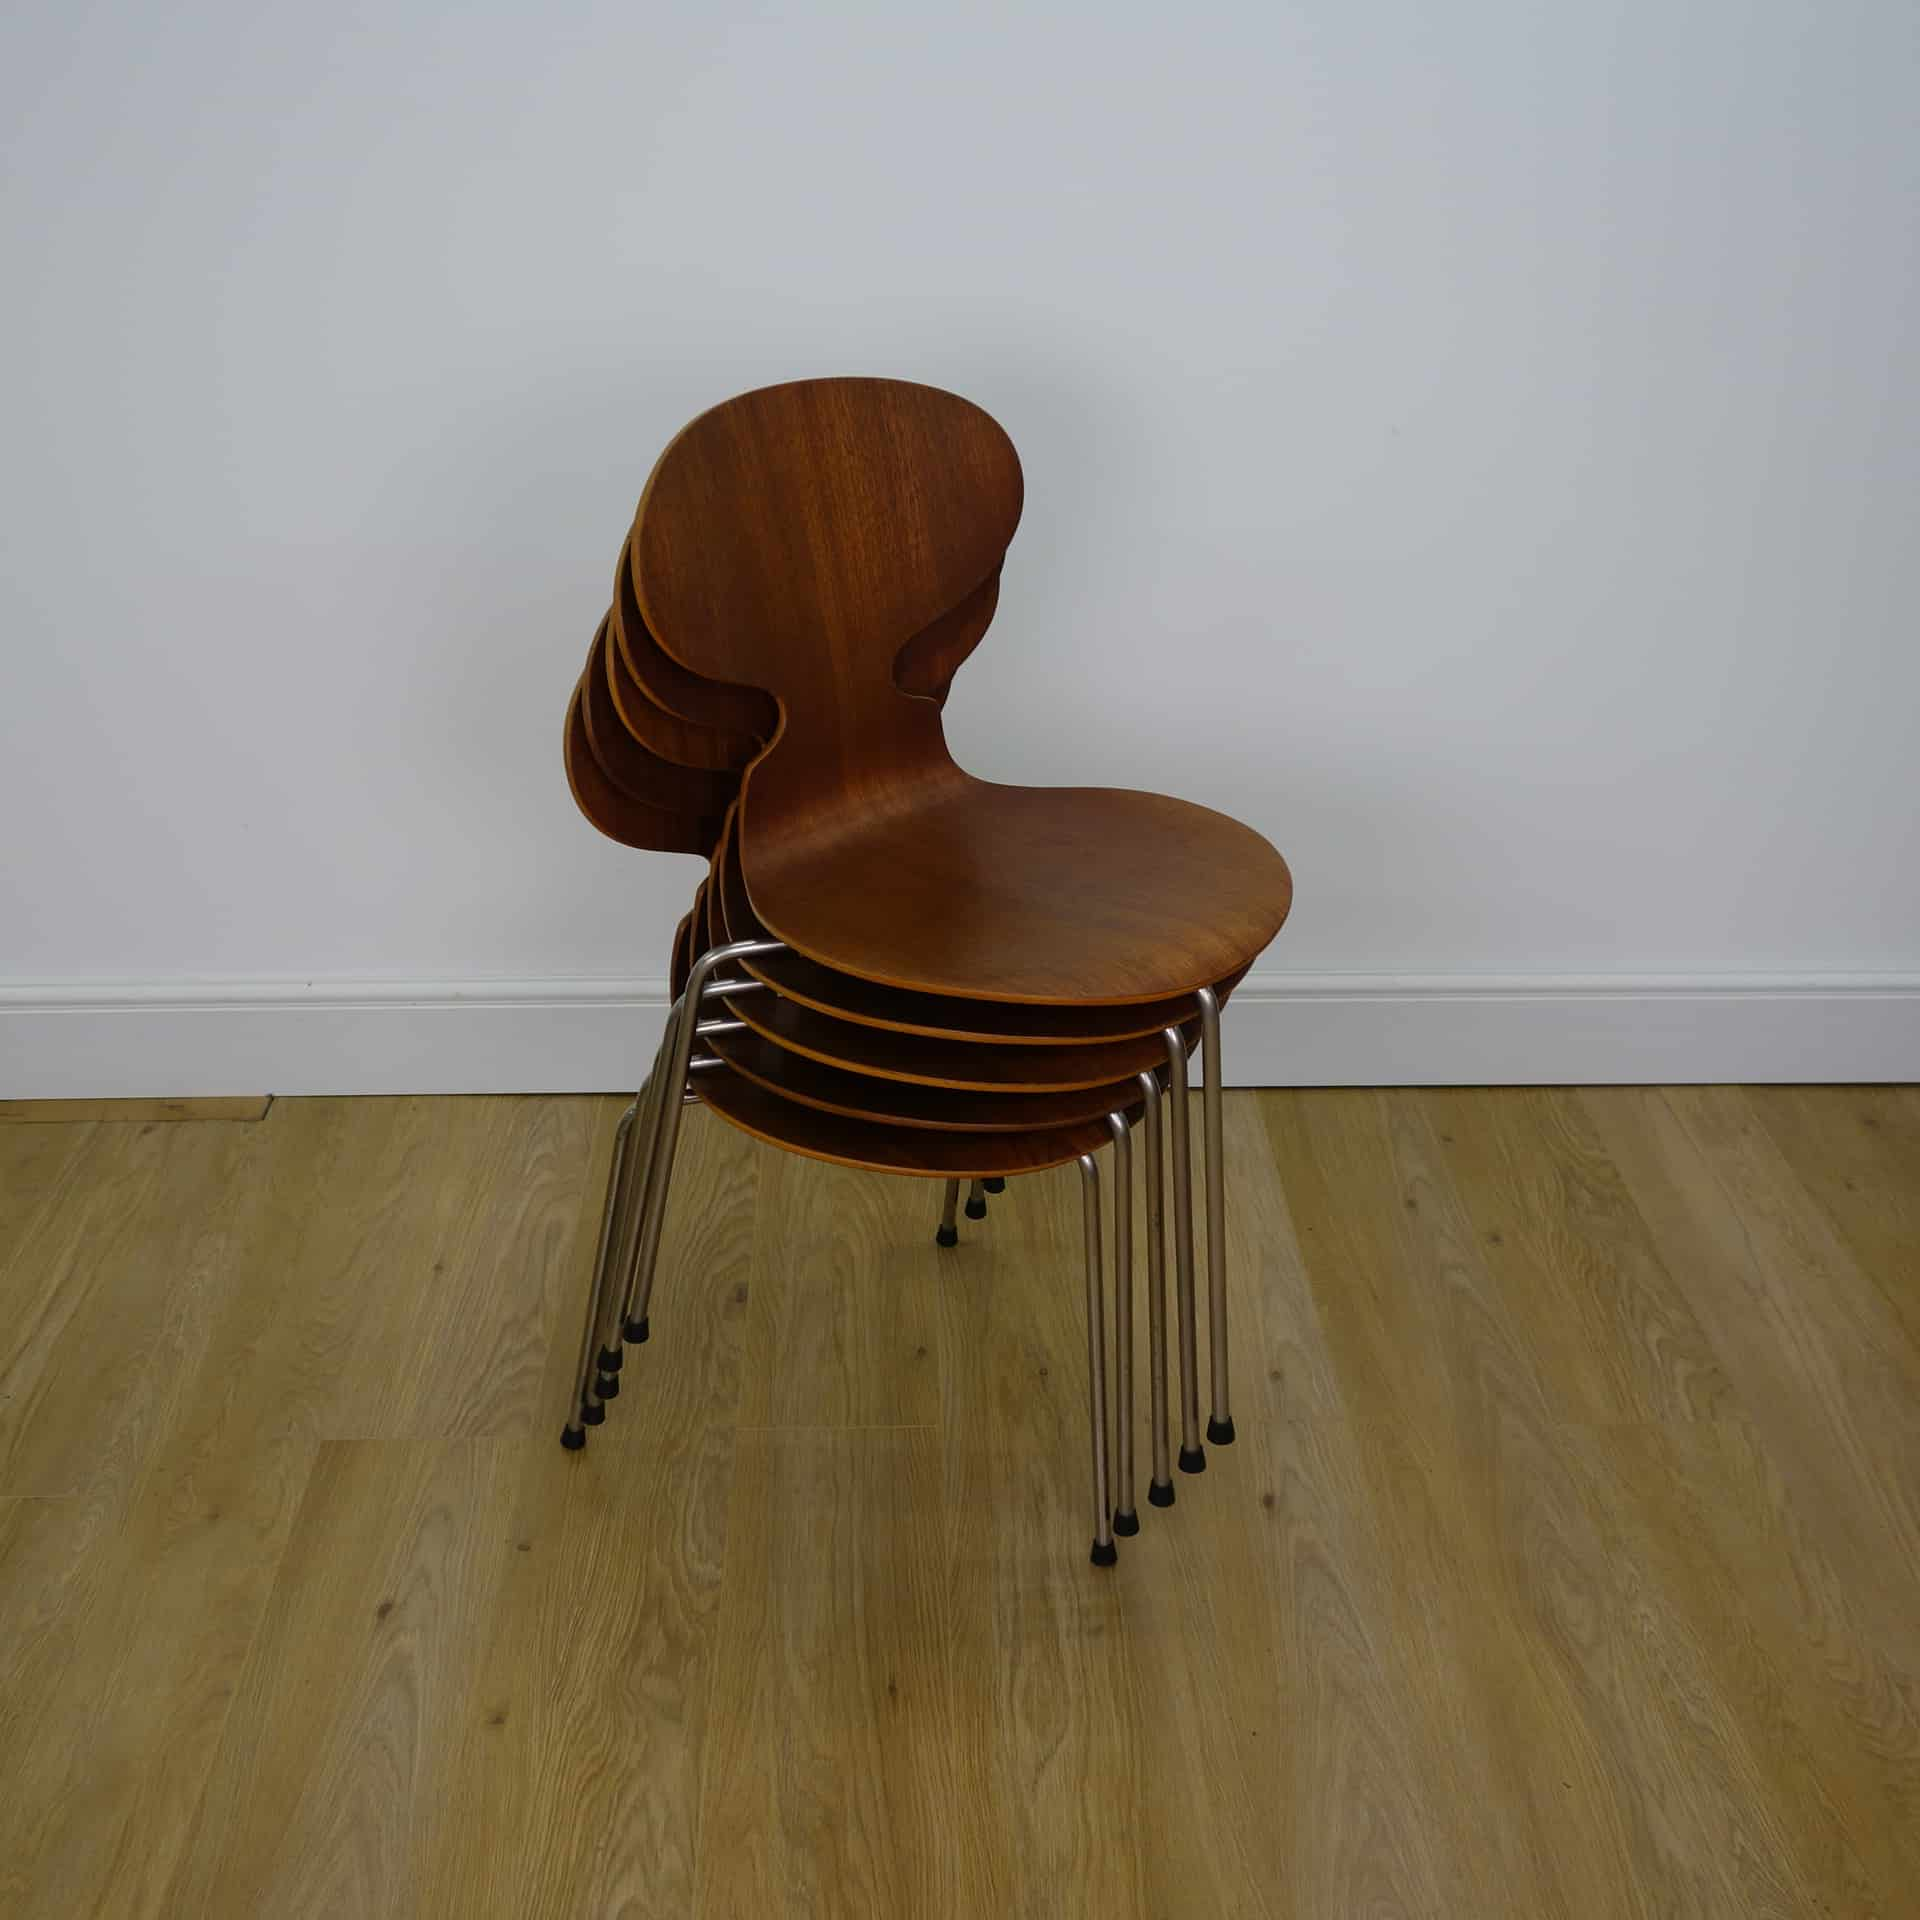 1950s teak ant chairs by Arne Jacobsen for Fritz Hansen